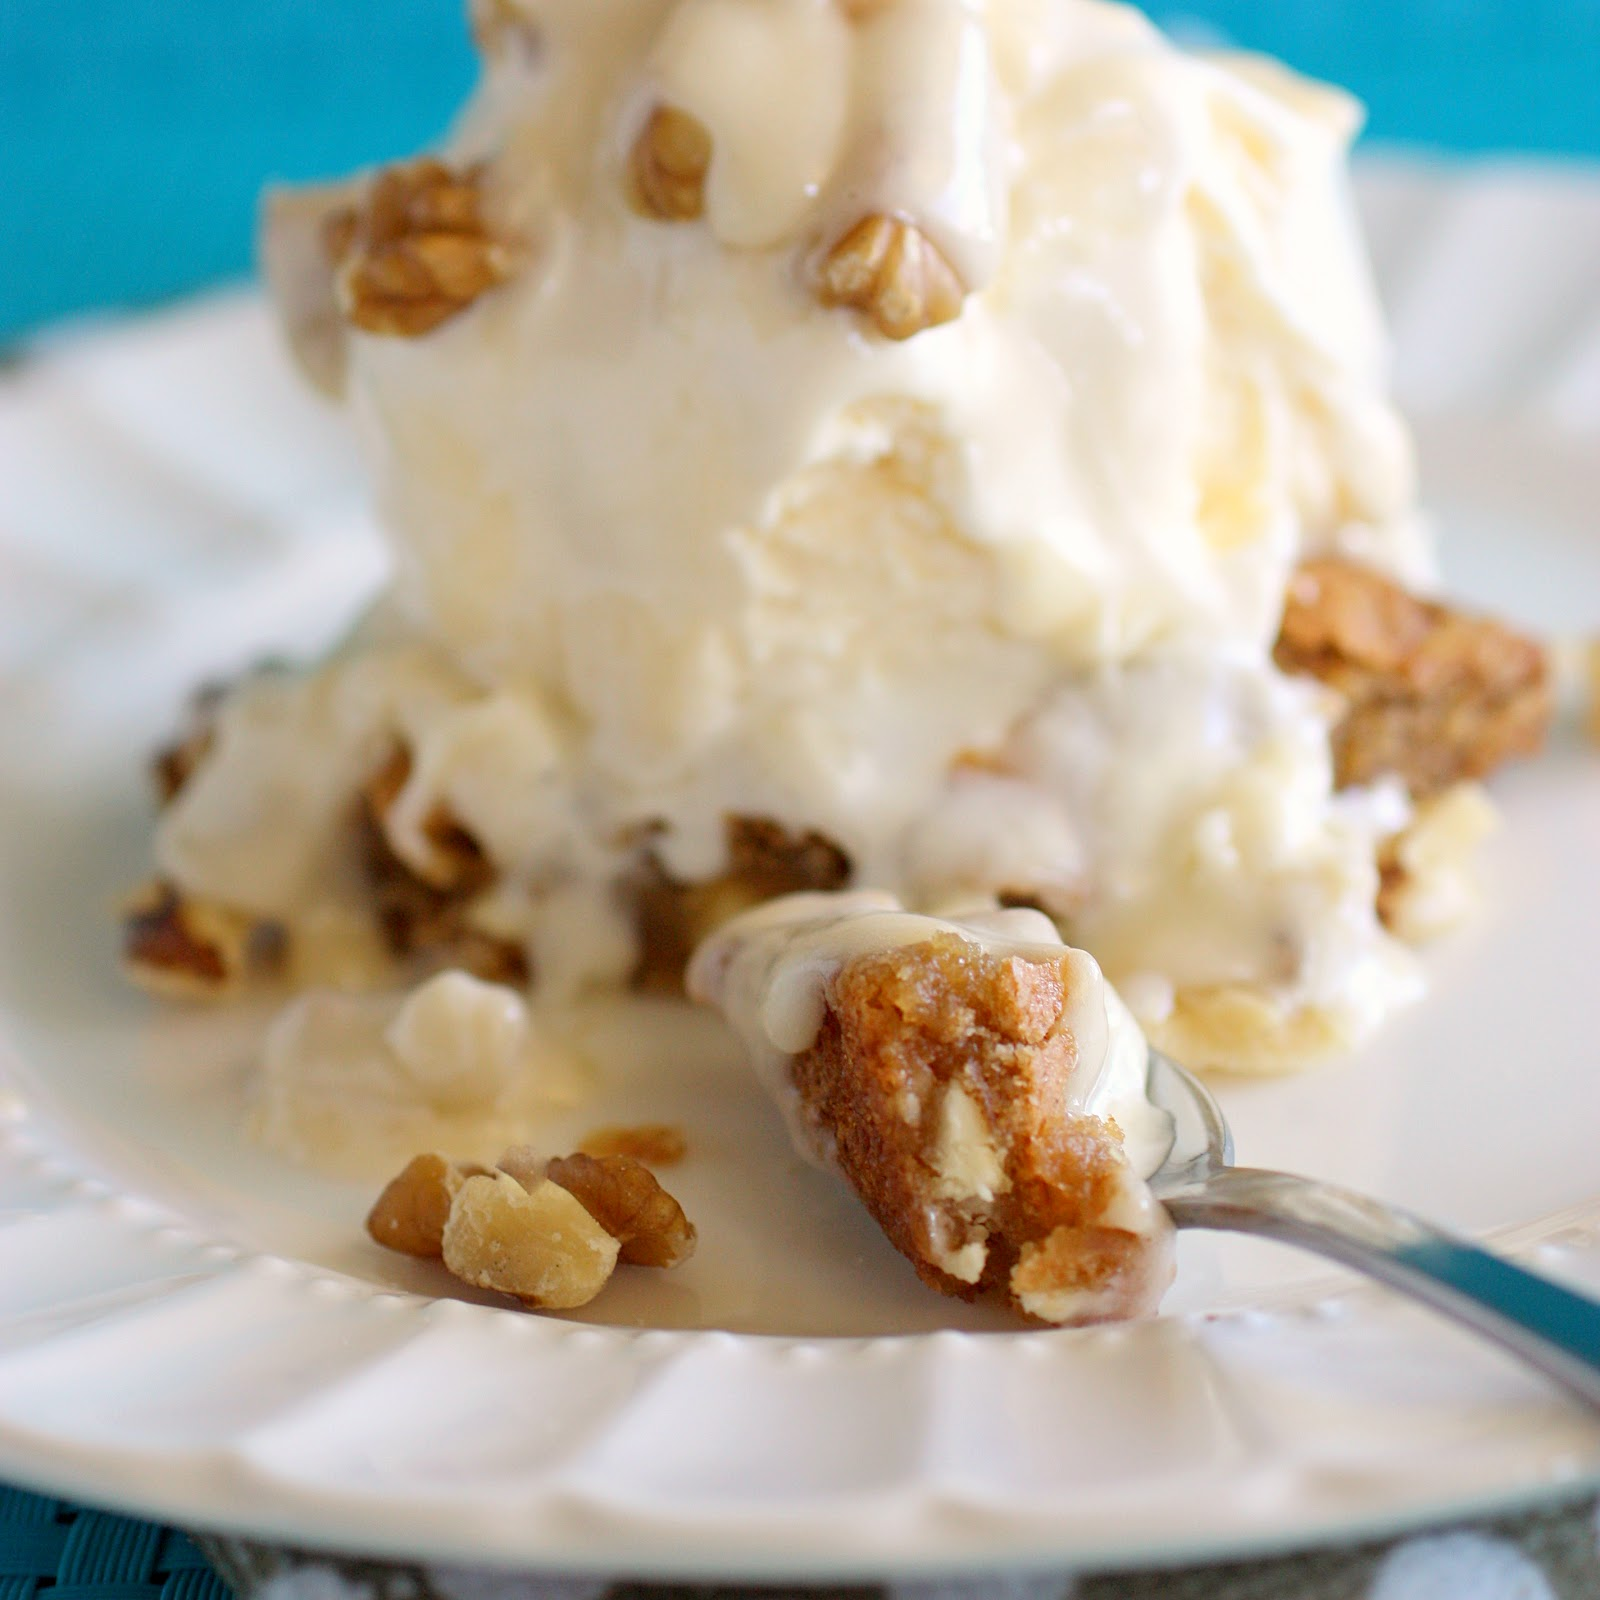 over at Tablespoon with this Maple Walnut Blondie recipe.